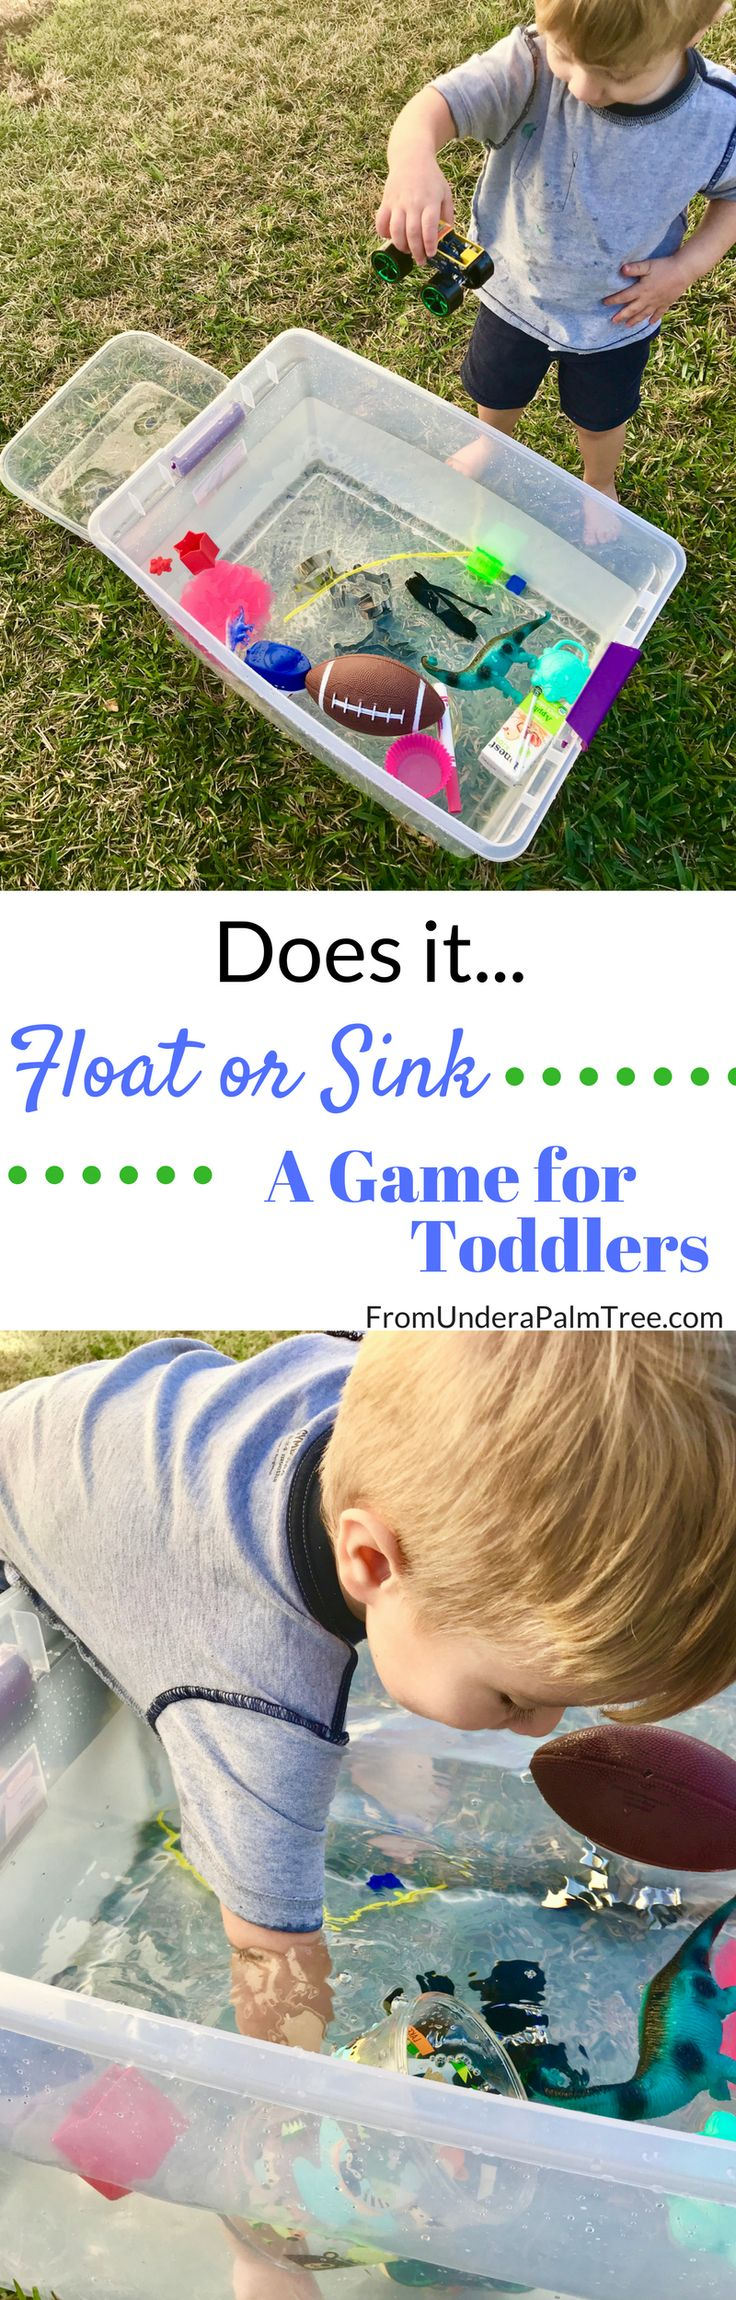 Games for Toddlers | Float or Sink Game for Toddlers | Science Games for Toddlers | toddler games | summer fun for kids | game ideas for toddlers | outdoor games for toddlers | outdoor games for kids | fun outdoor games for kids | kids games | water games for kids | water games for toddlers | science games |